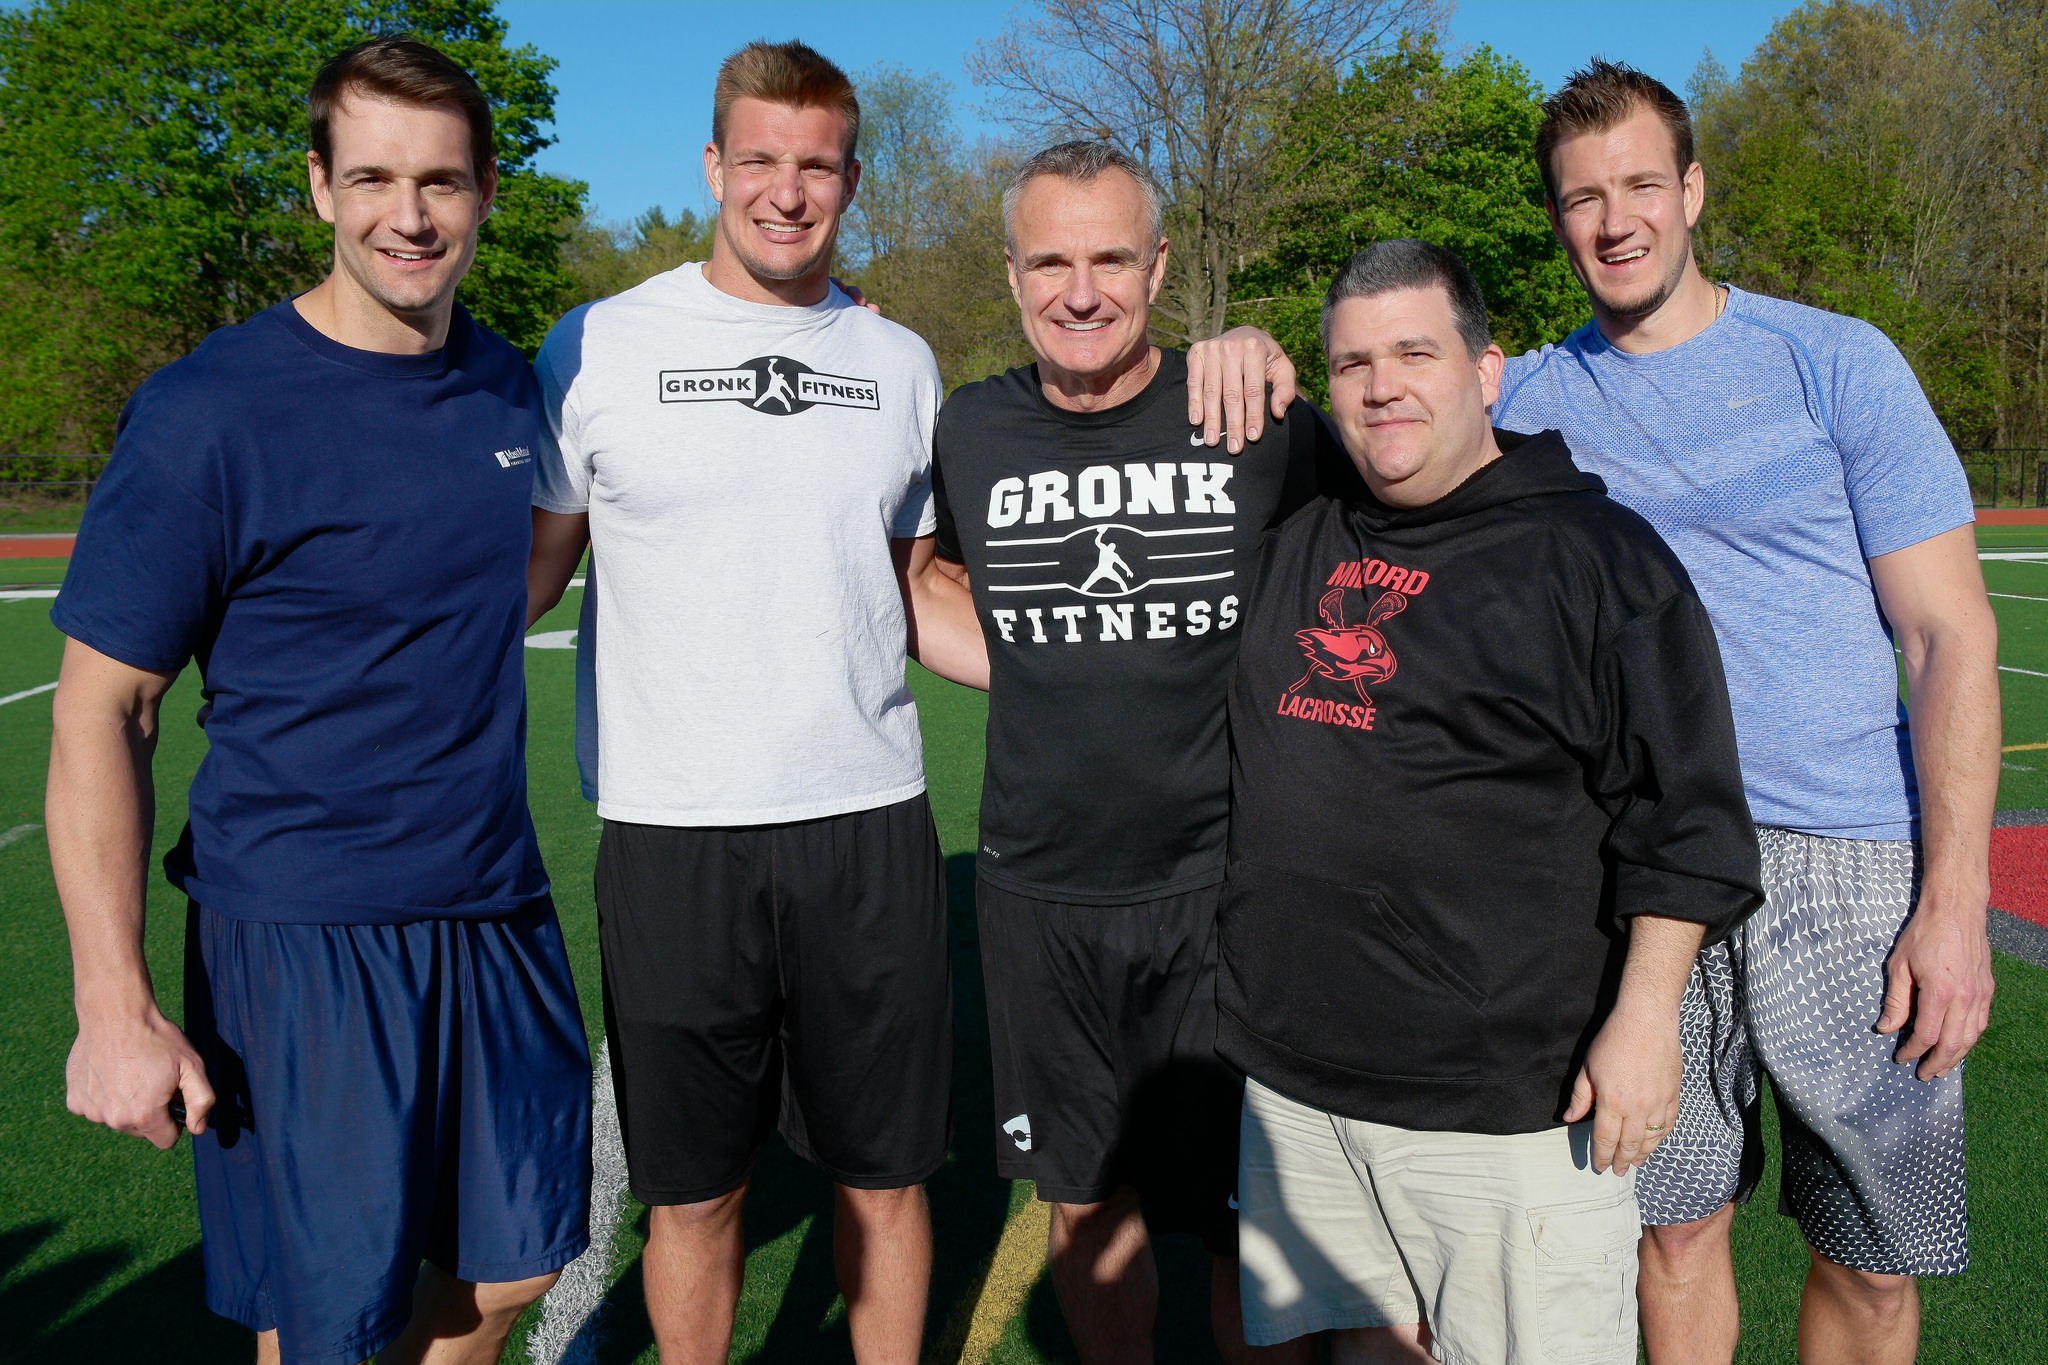 cc-and-gronk